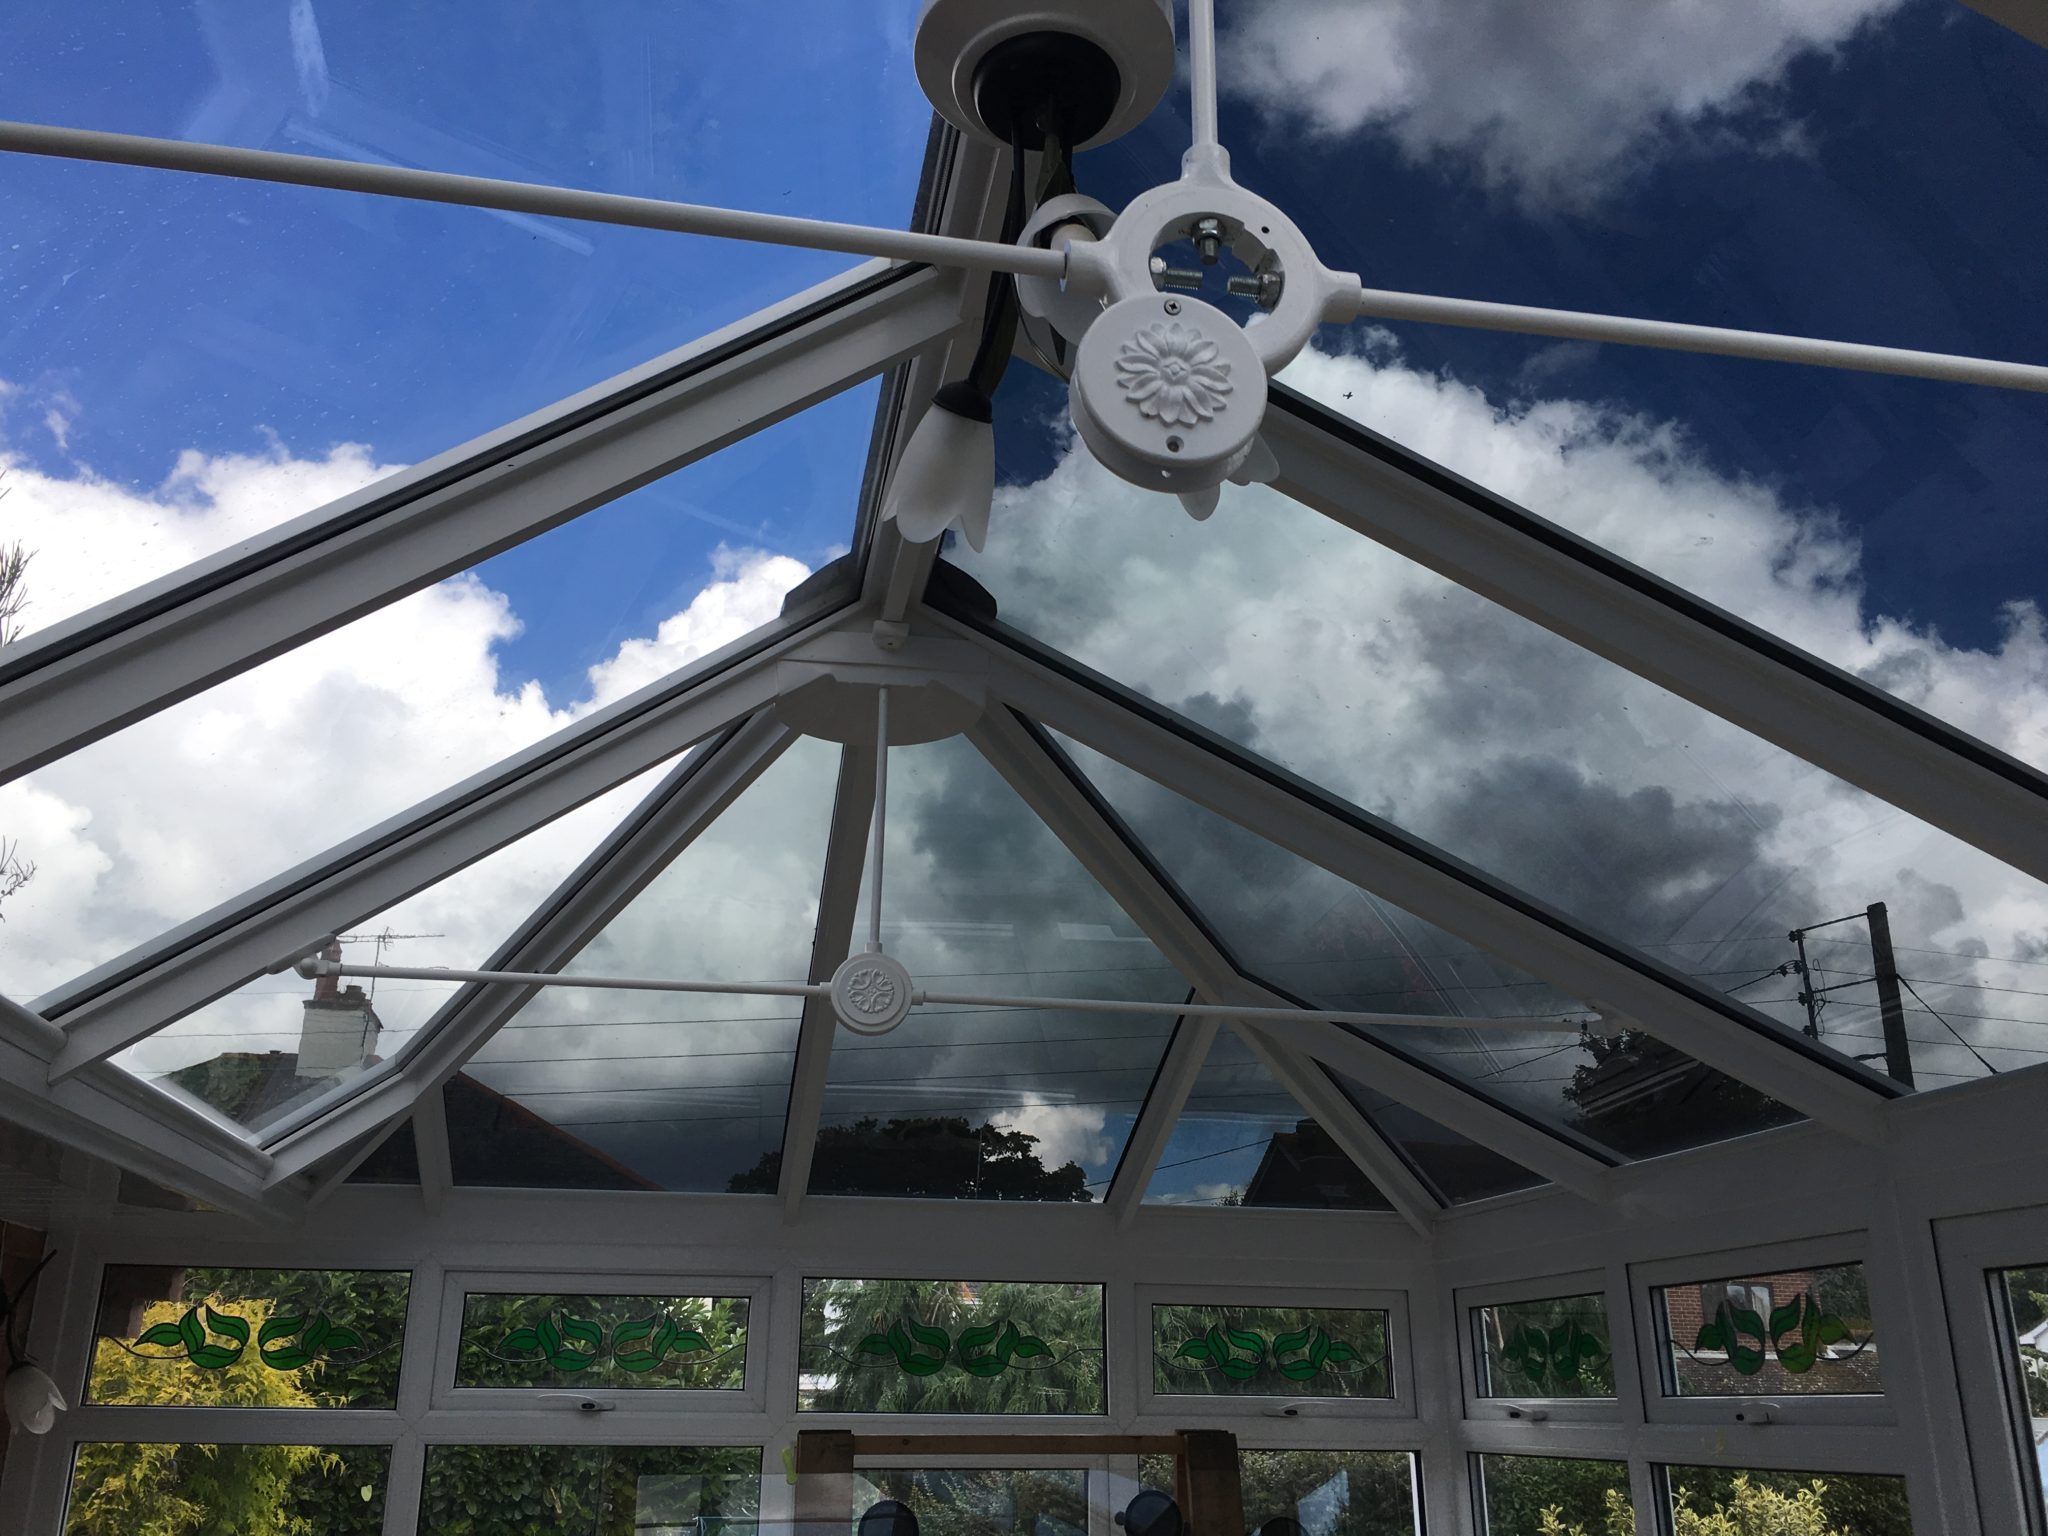 Conservatory Glare Reduction Visual Contrast with Window Film